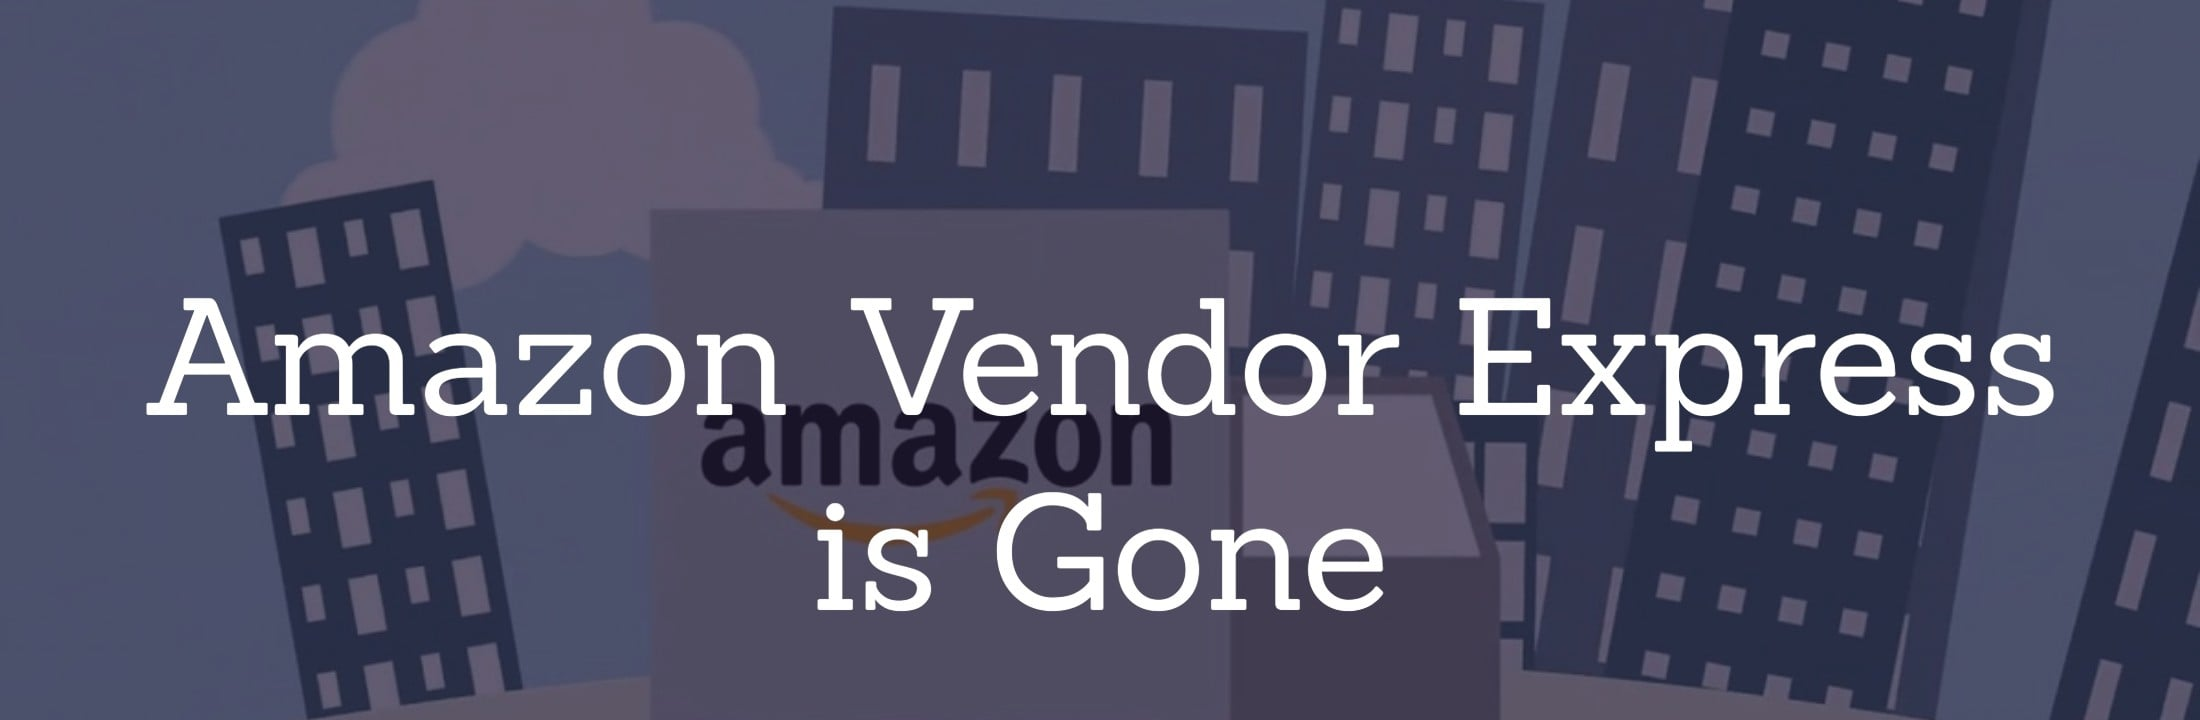 Amazon Vendor Express is Gone